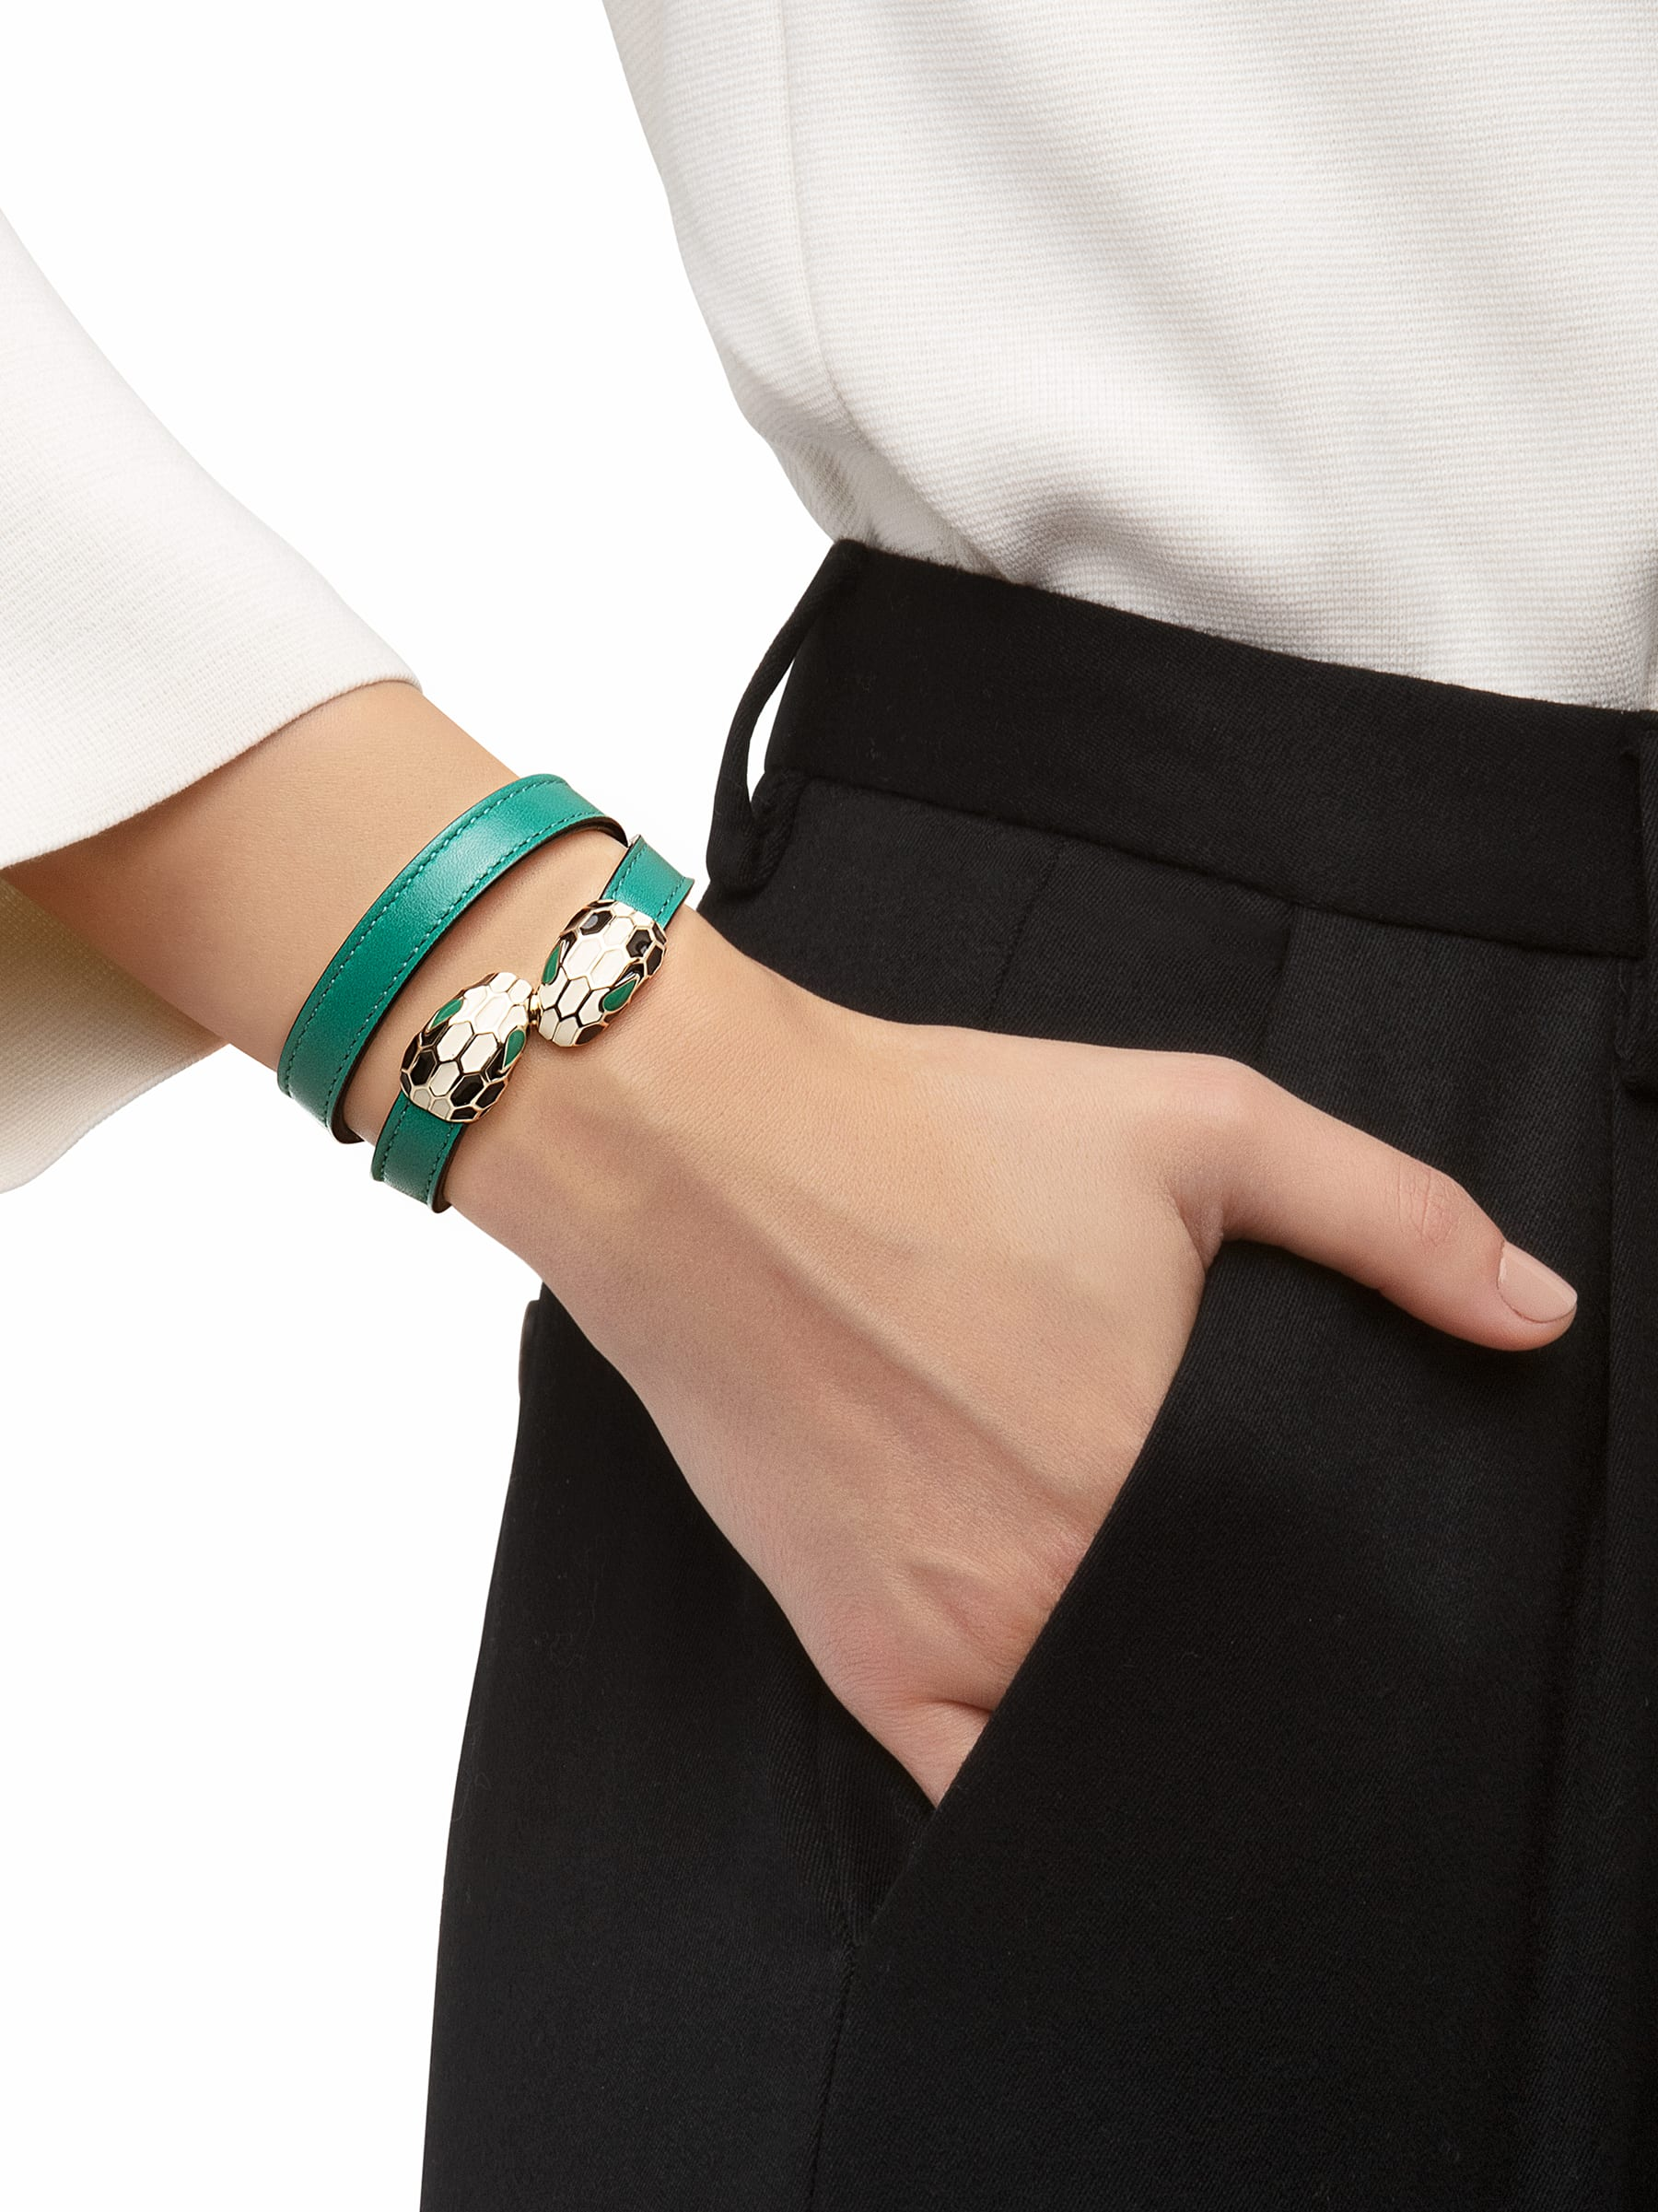 Multi-coiled bracelet in emerald green calf leather. Brass light gold plated iconic contraire Serpenti head closure in black and white enamel with malachite enamel eyes. Also available in other colours. MCSerp-CL-EG image 2